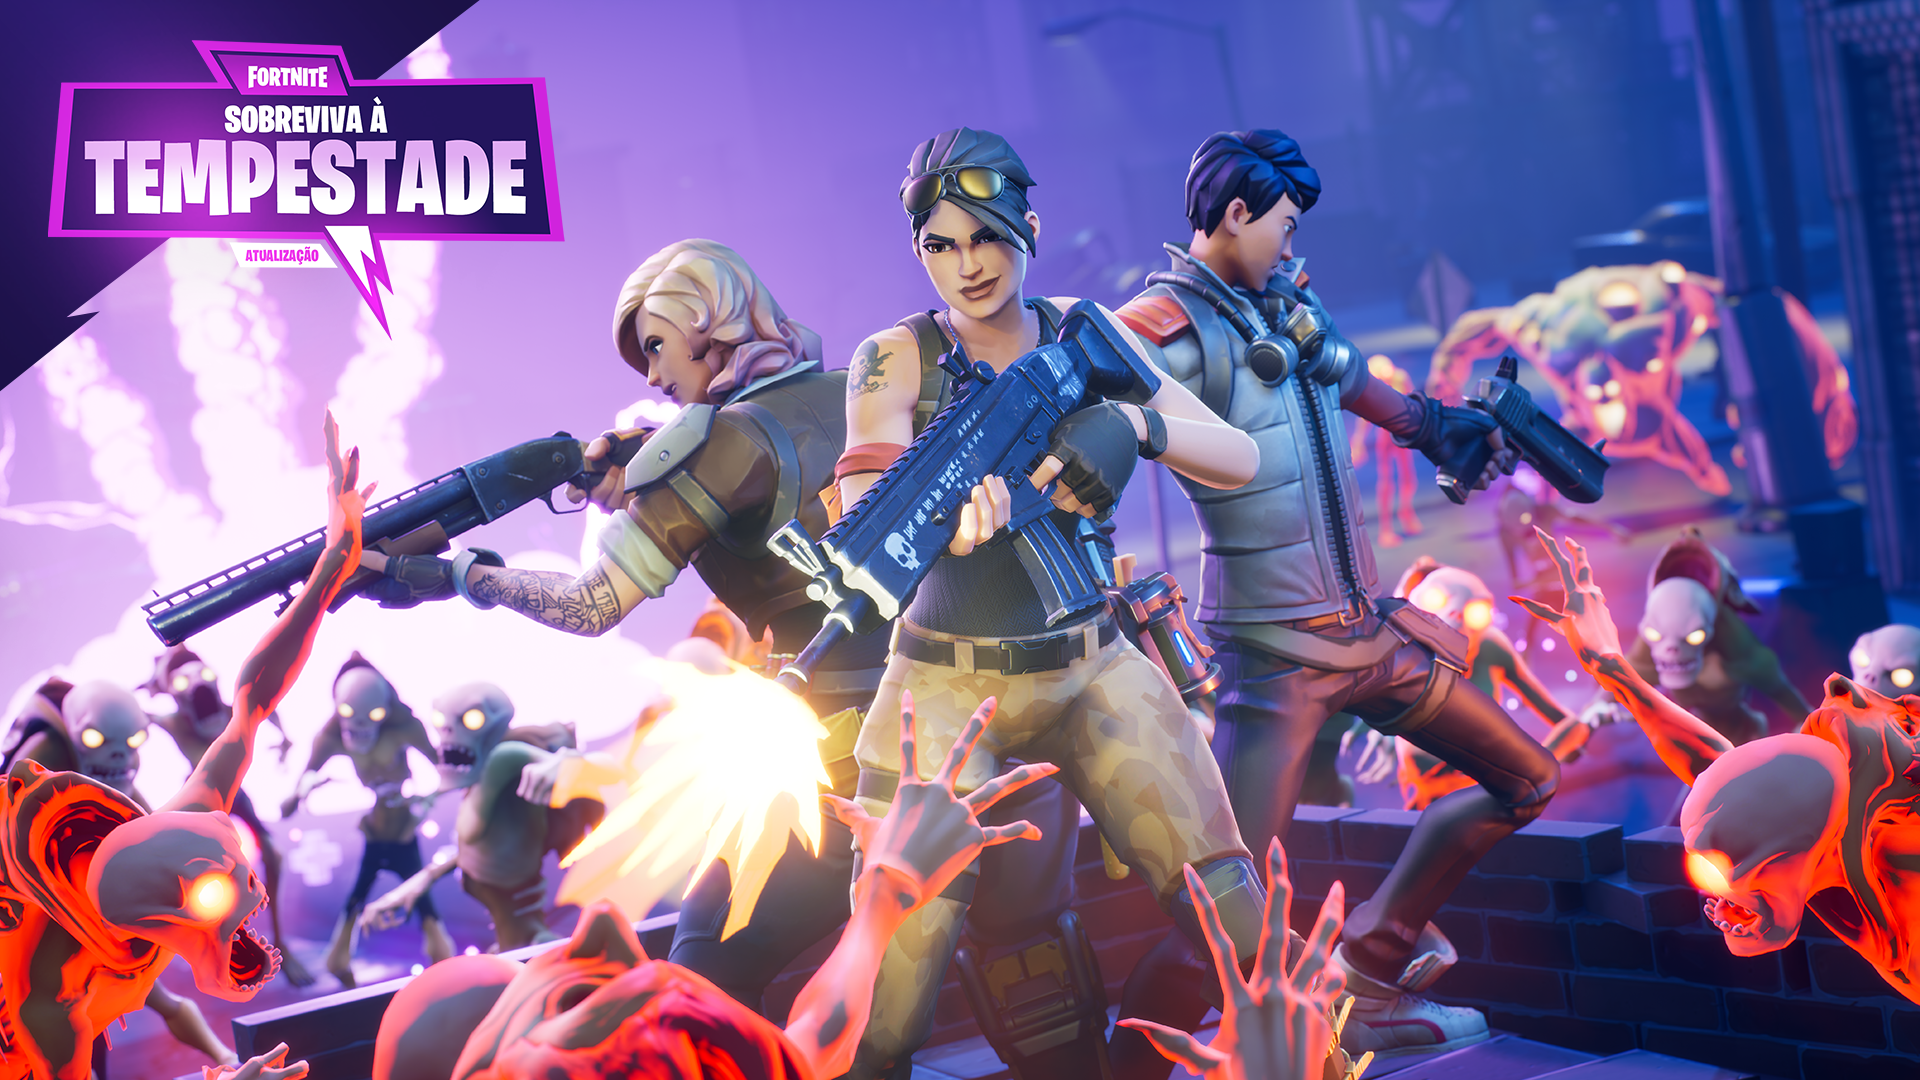 Fortnite%2Fblog%2Fsurvive-the-storm---release-notes%2FPT_Storm-Zone-1920x1080-9903e1f9433812620cb6e4c4a4af0b68e32dc114